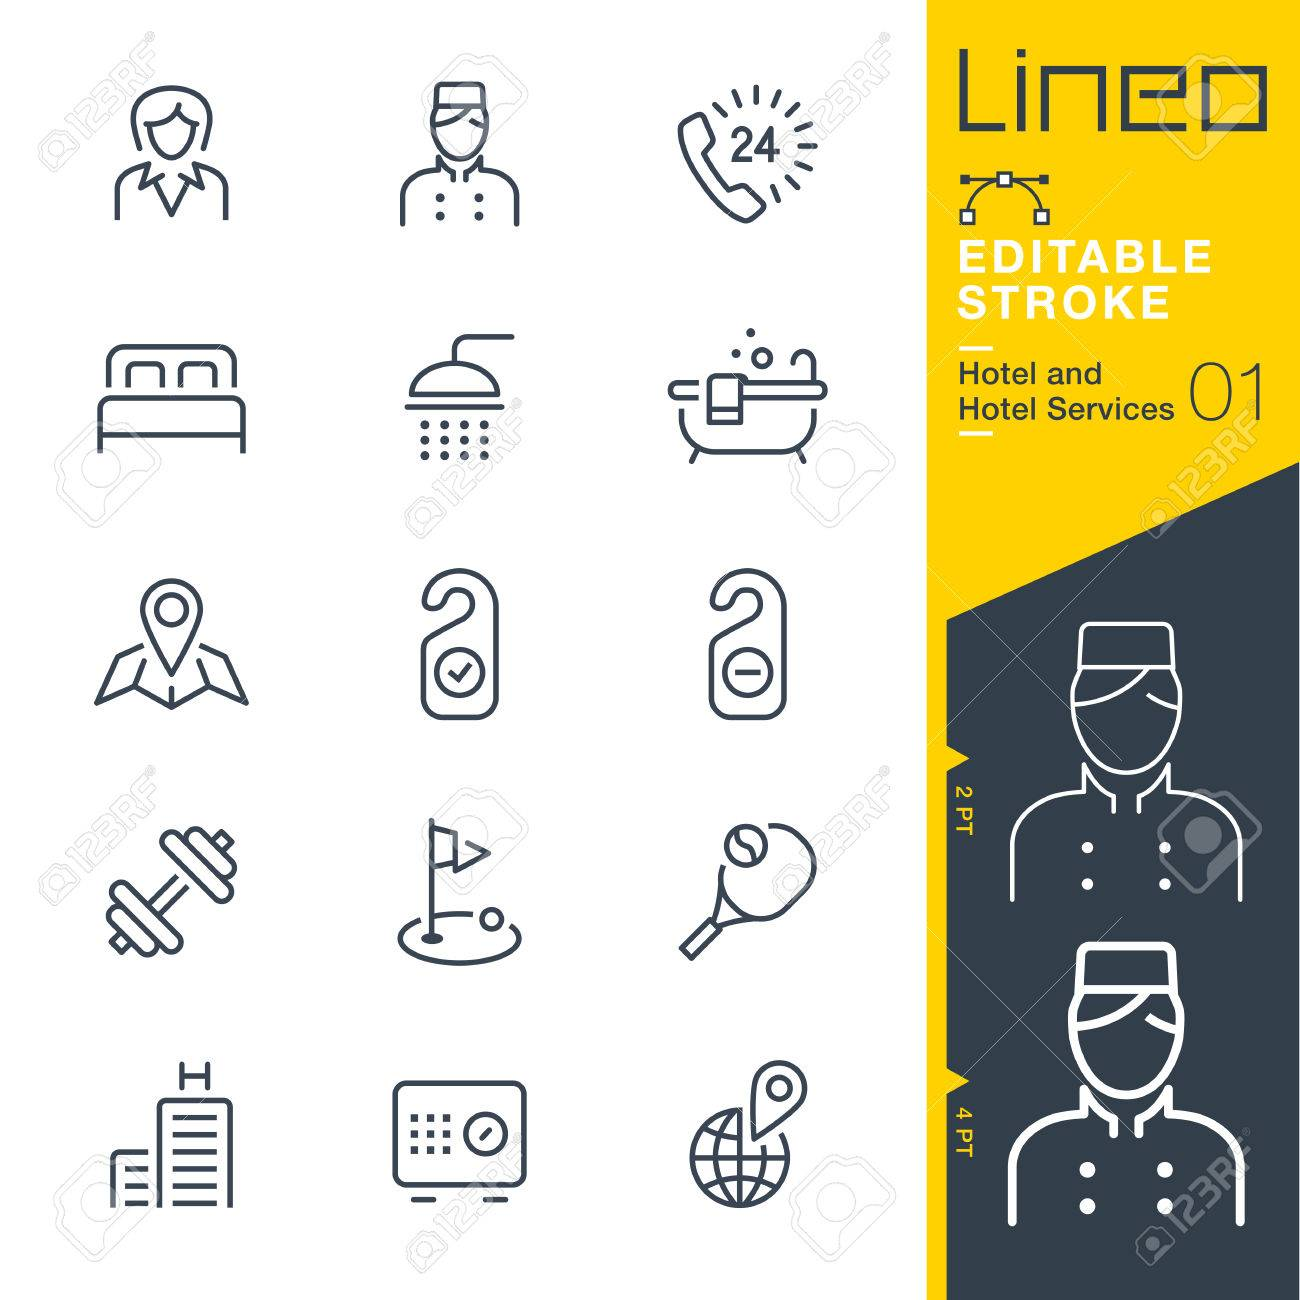 Lineo Editable Stroke - Hotel line icon Vector Icons - Adjust stroke weight - Change to any color - 80270258